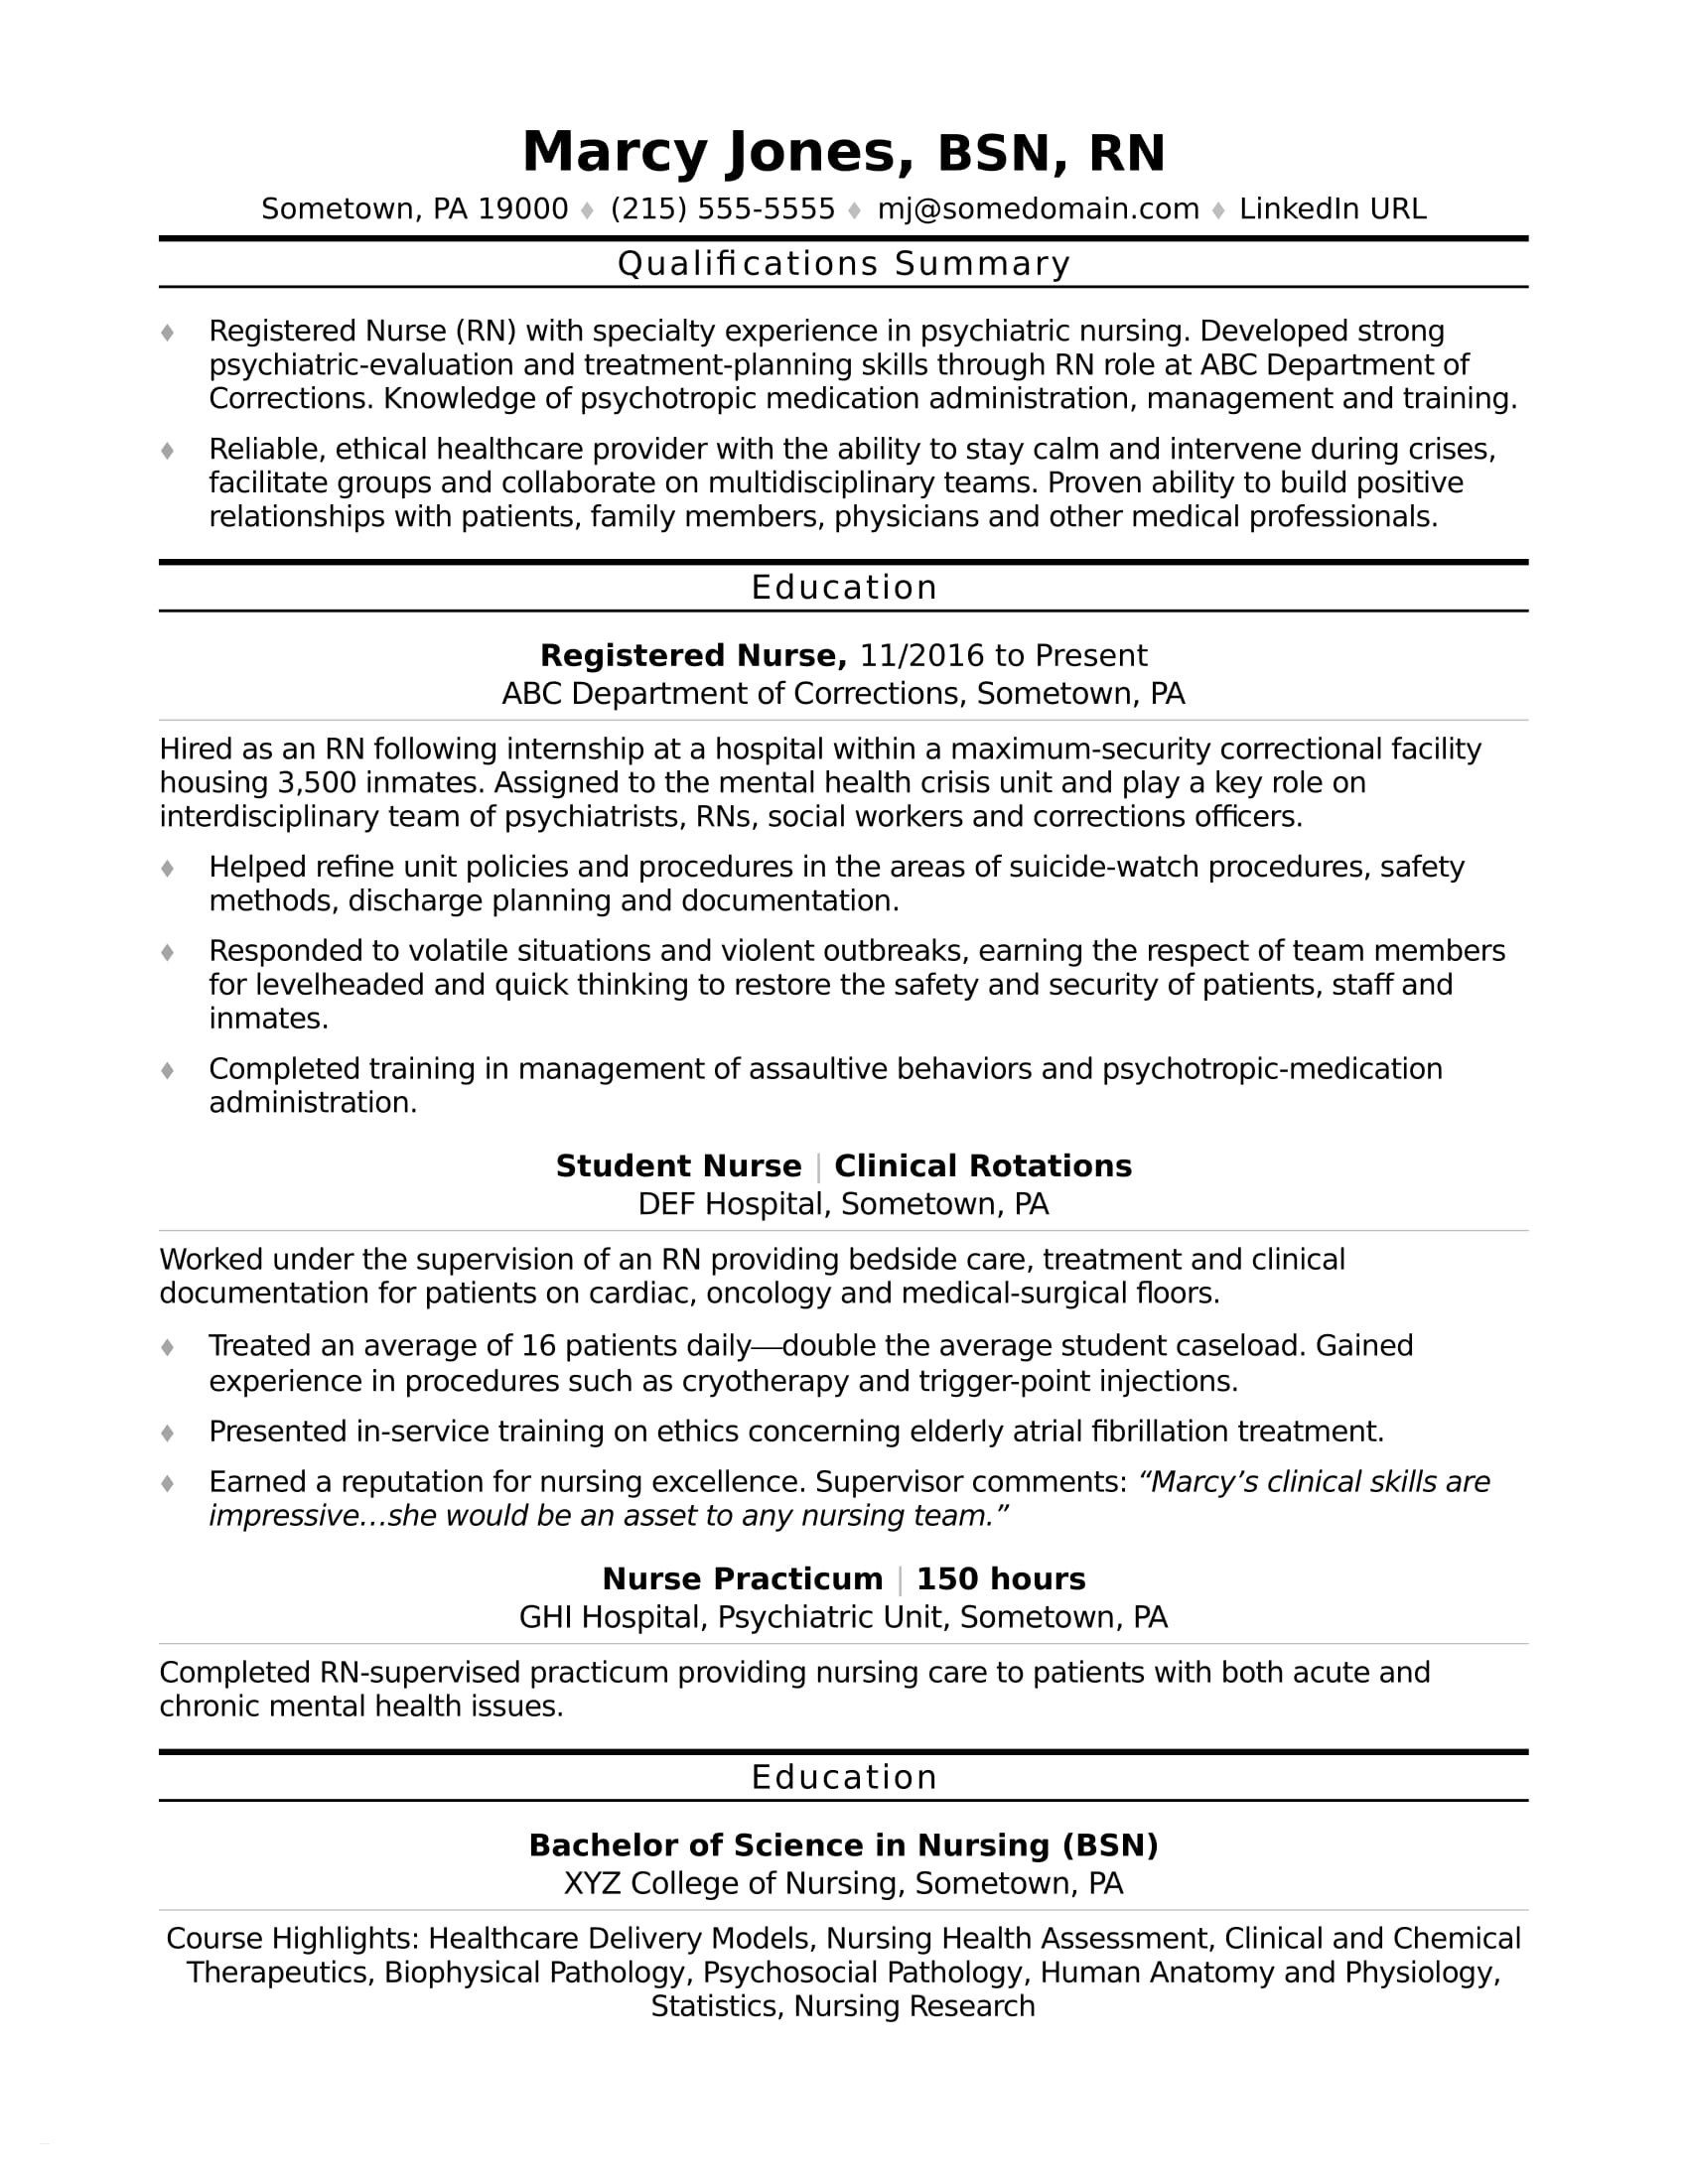 er nurse responsibilities resume example-Er Nurse Resume Best Sample Emergency Room Nurse Resume Free Download Rn Bsn Resumes 11-s